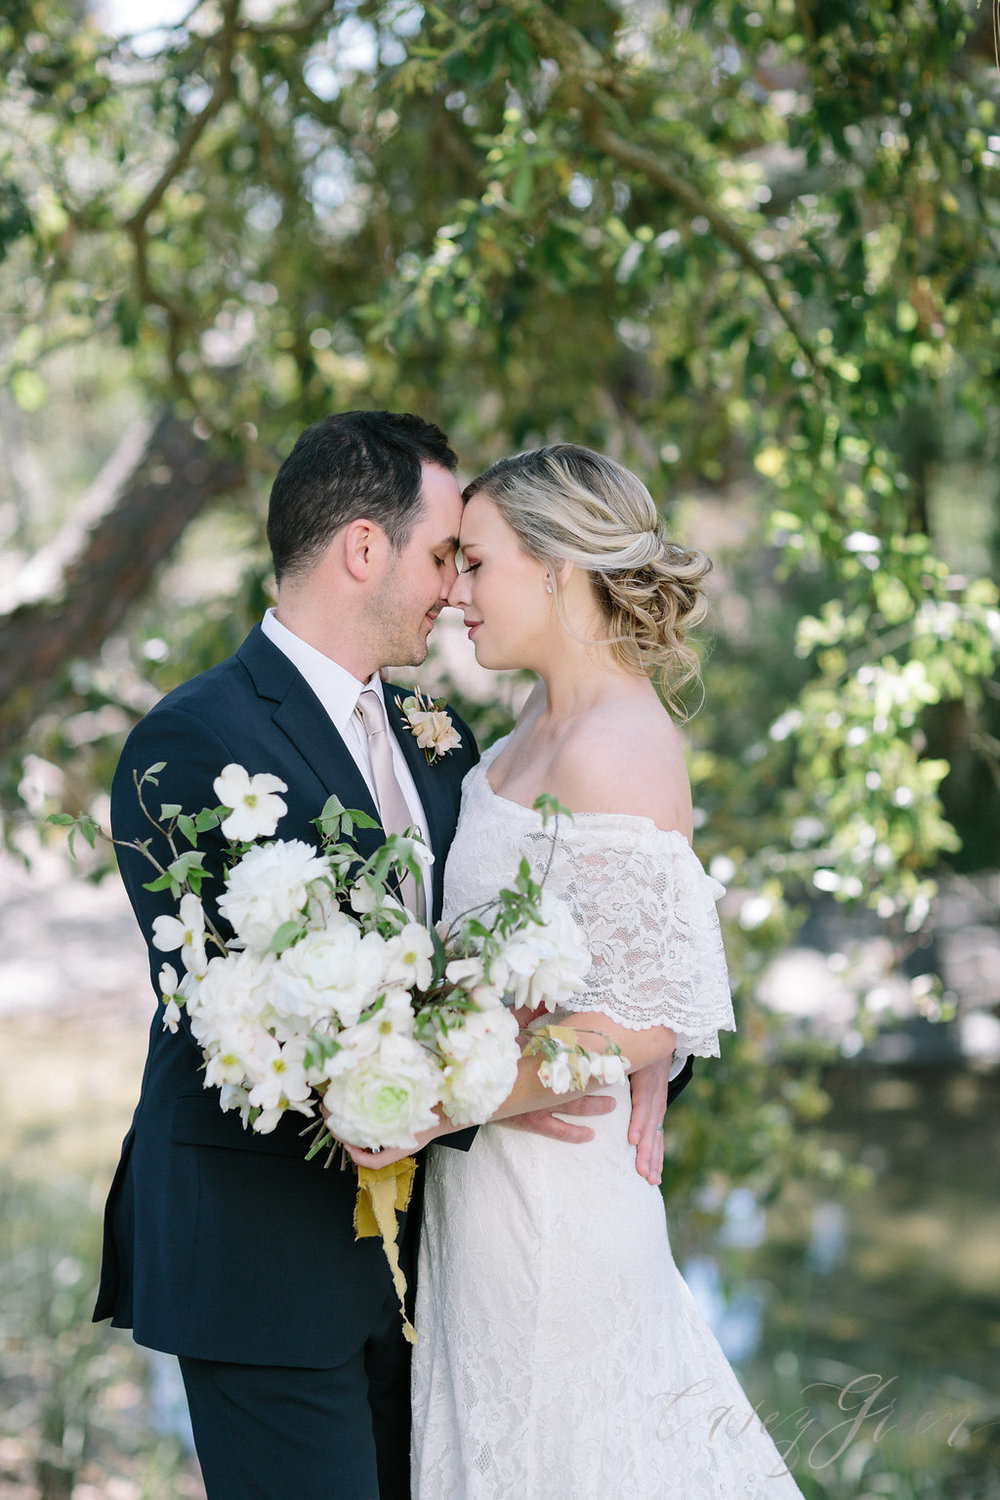 savannah-bridal-shop-ivory-and-beau-bridal-boutique-casey-green-photography-tybee-island-chapel-wedding-planning-mistakes-4.jpg